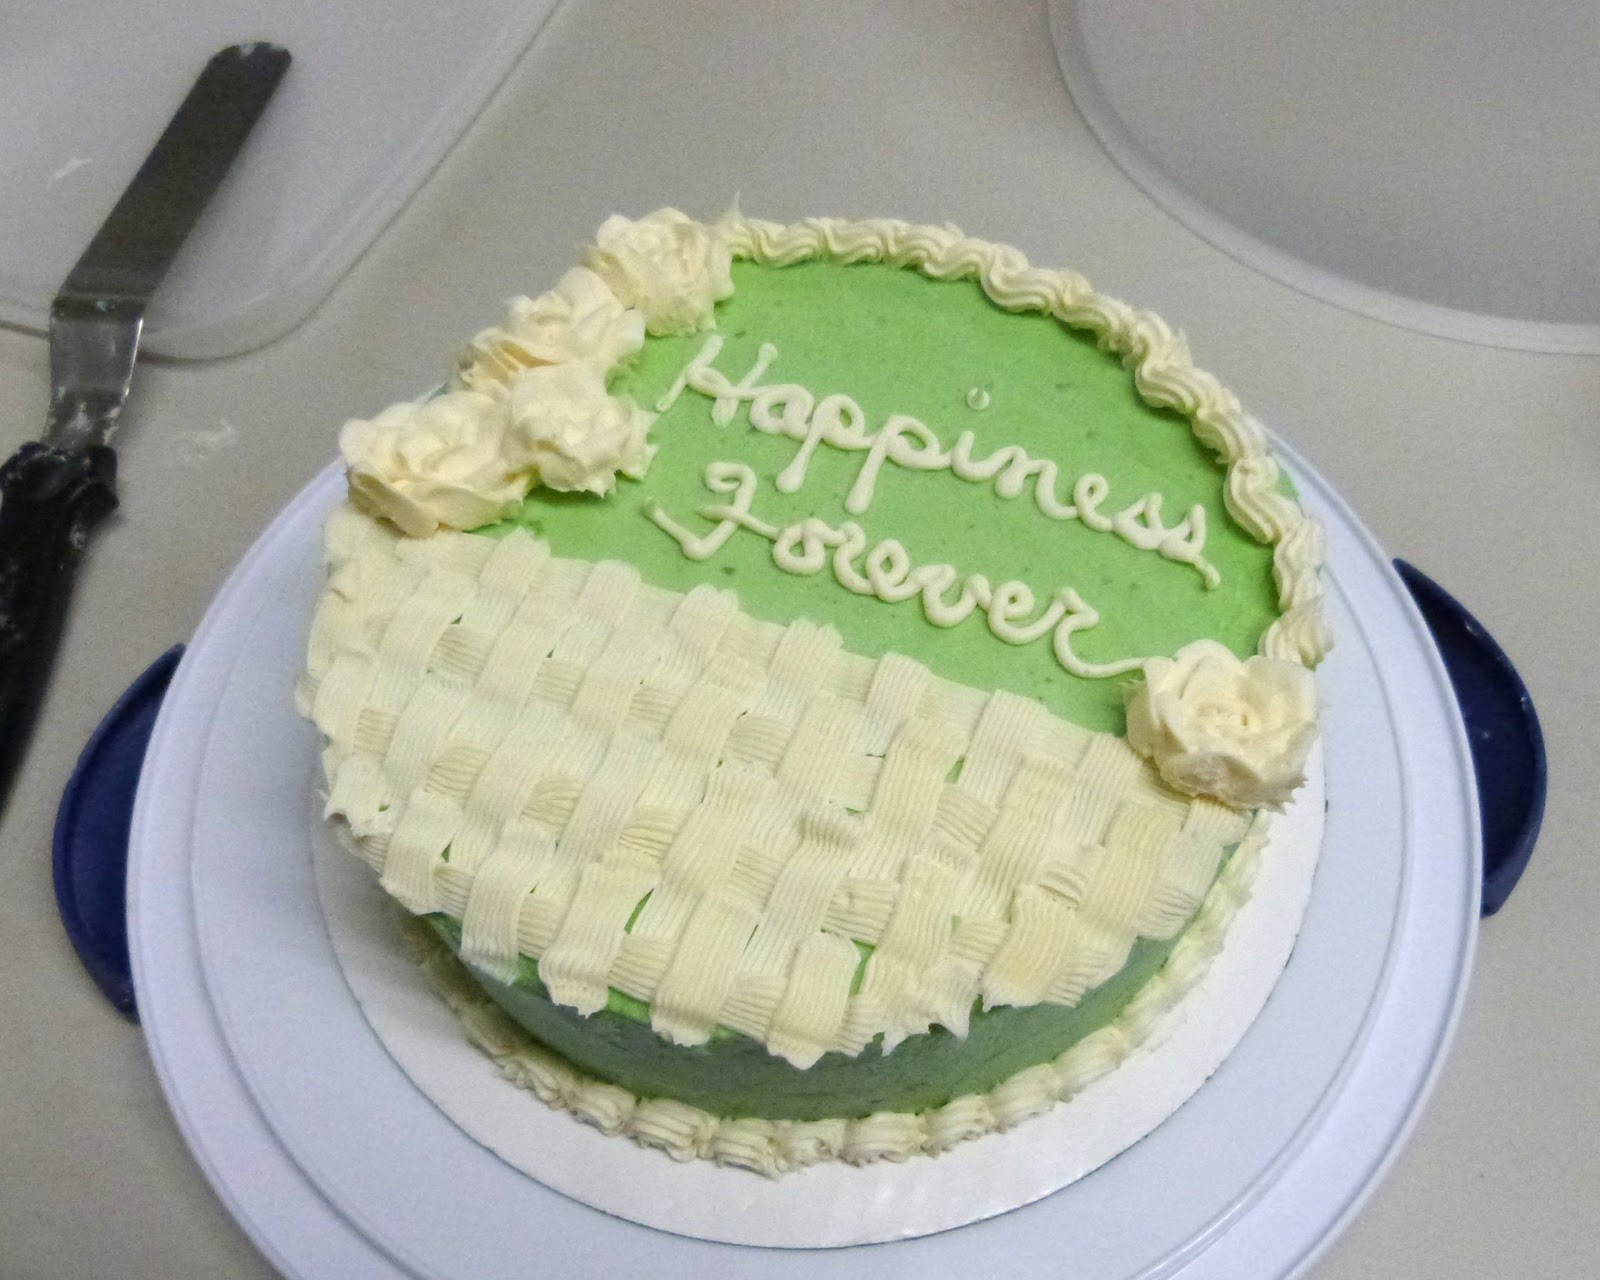 Pics For Gt Simple Cake Decorating Ideas For Beginners